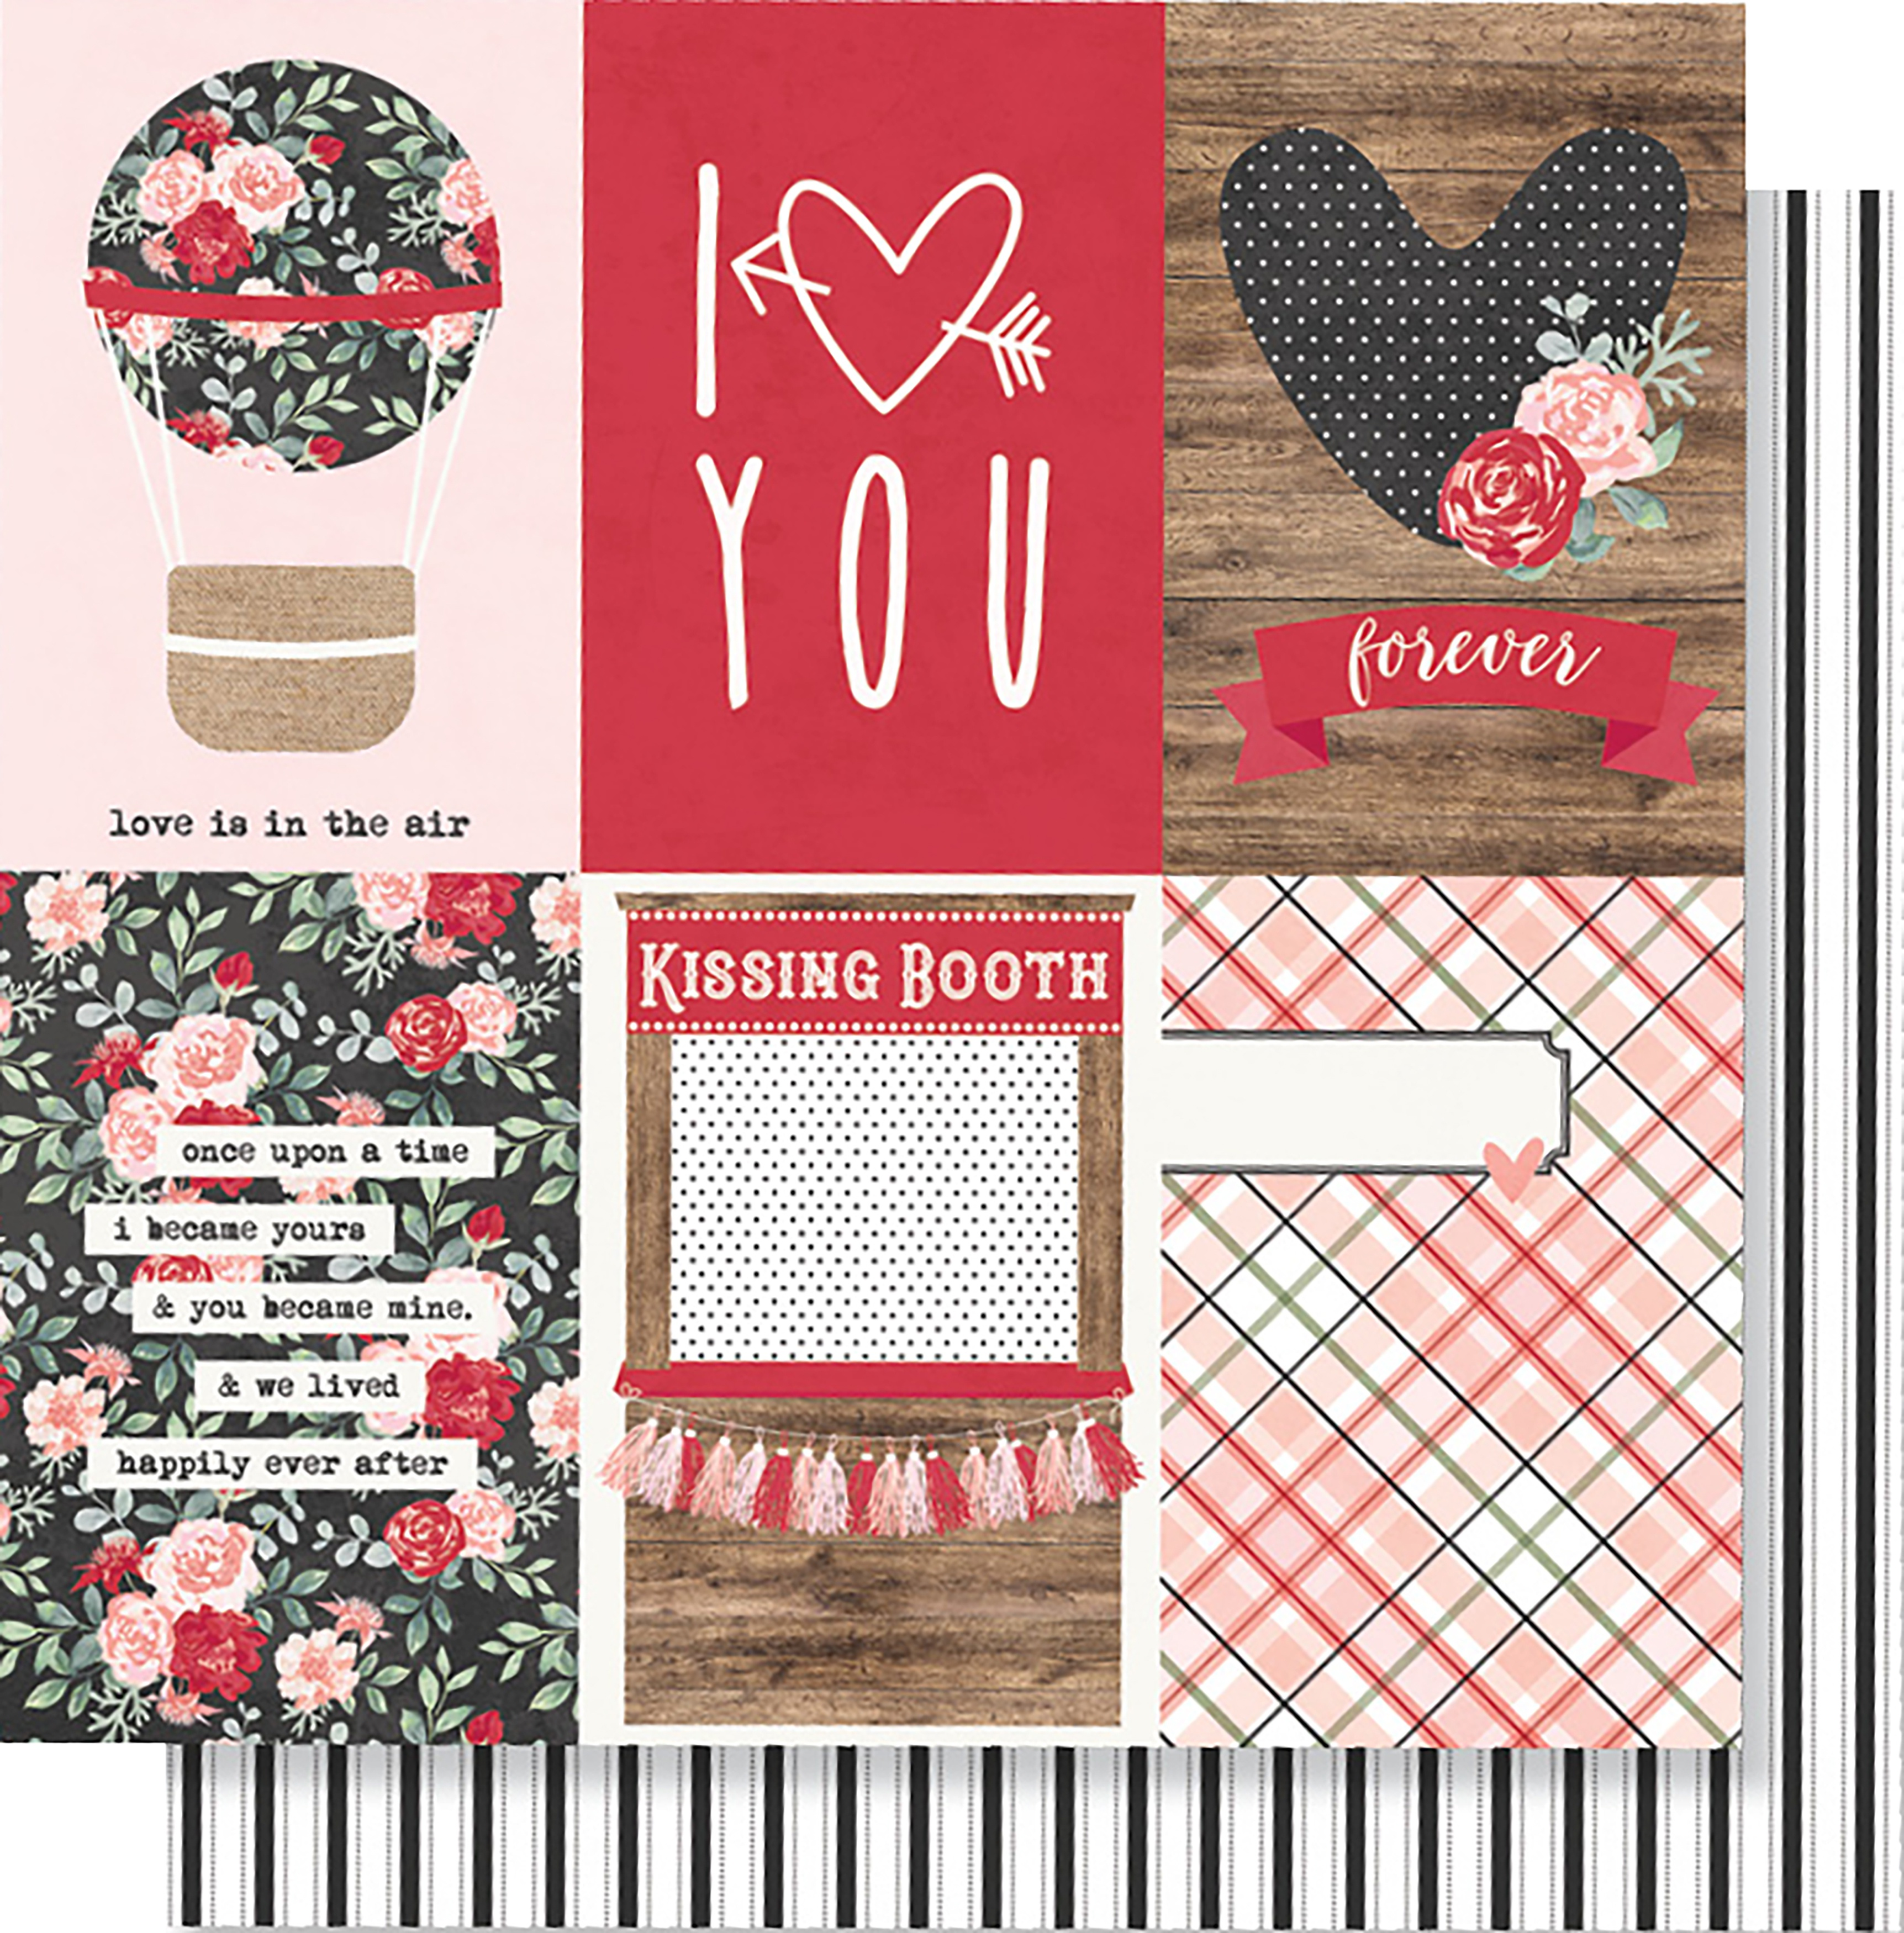 Kissing Booth Double-Sided Cardstock 12X12-4X6 Vertical Elements